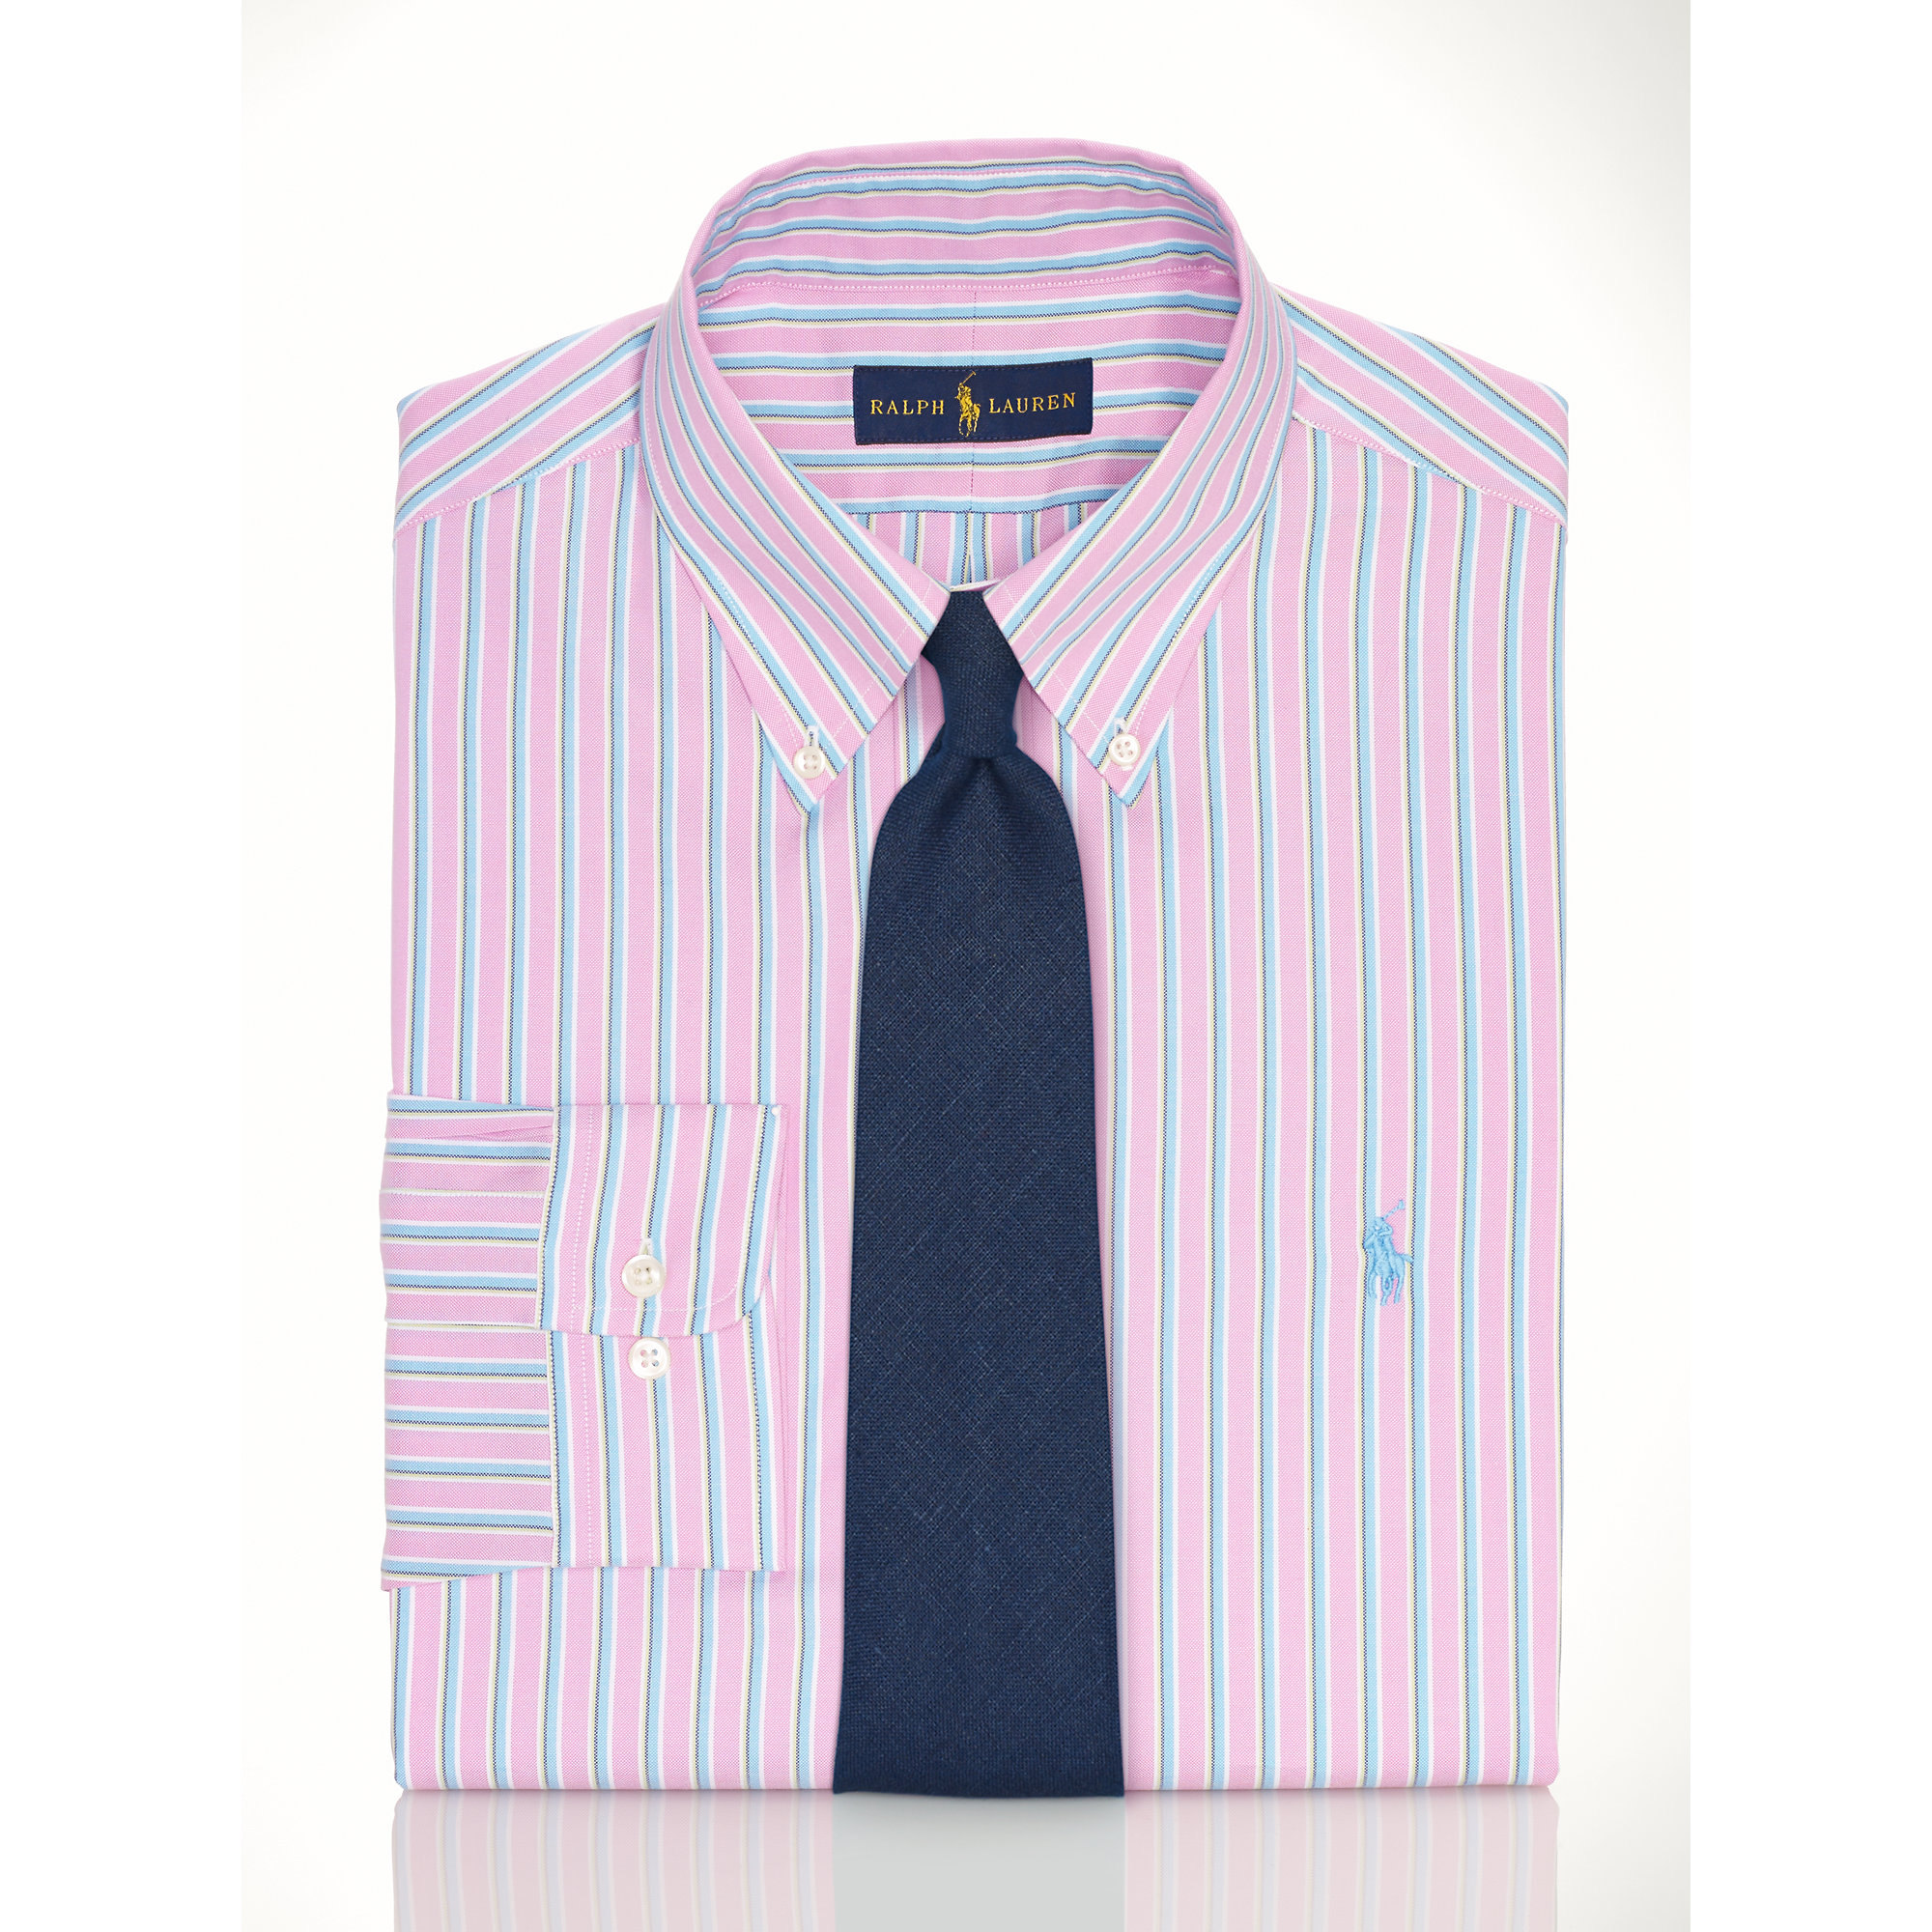 Polo ralph lauren striped pinpoint oxford shirt in pink for Pink and white ralph lauren shirt